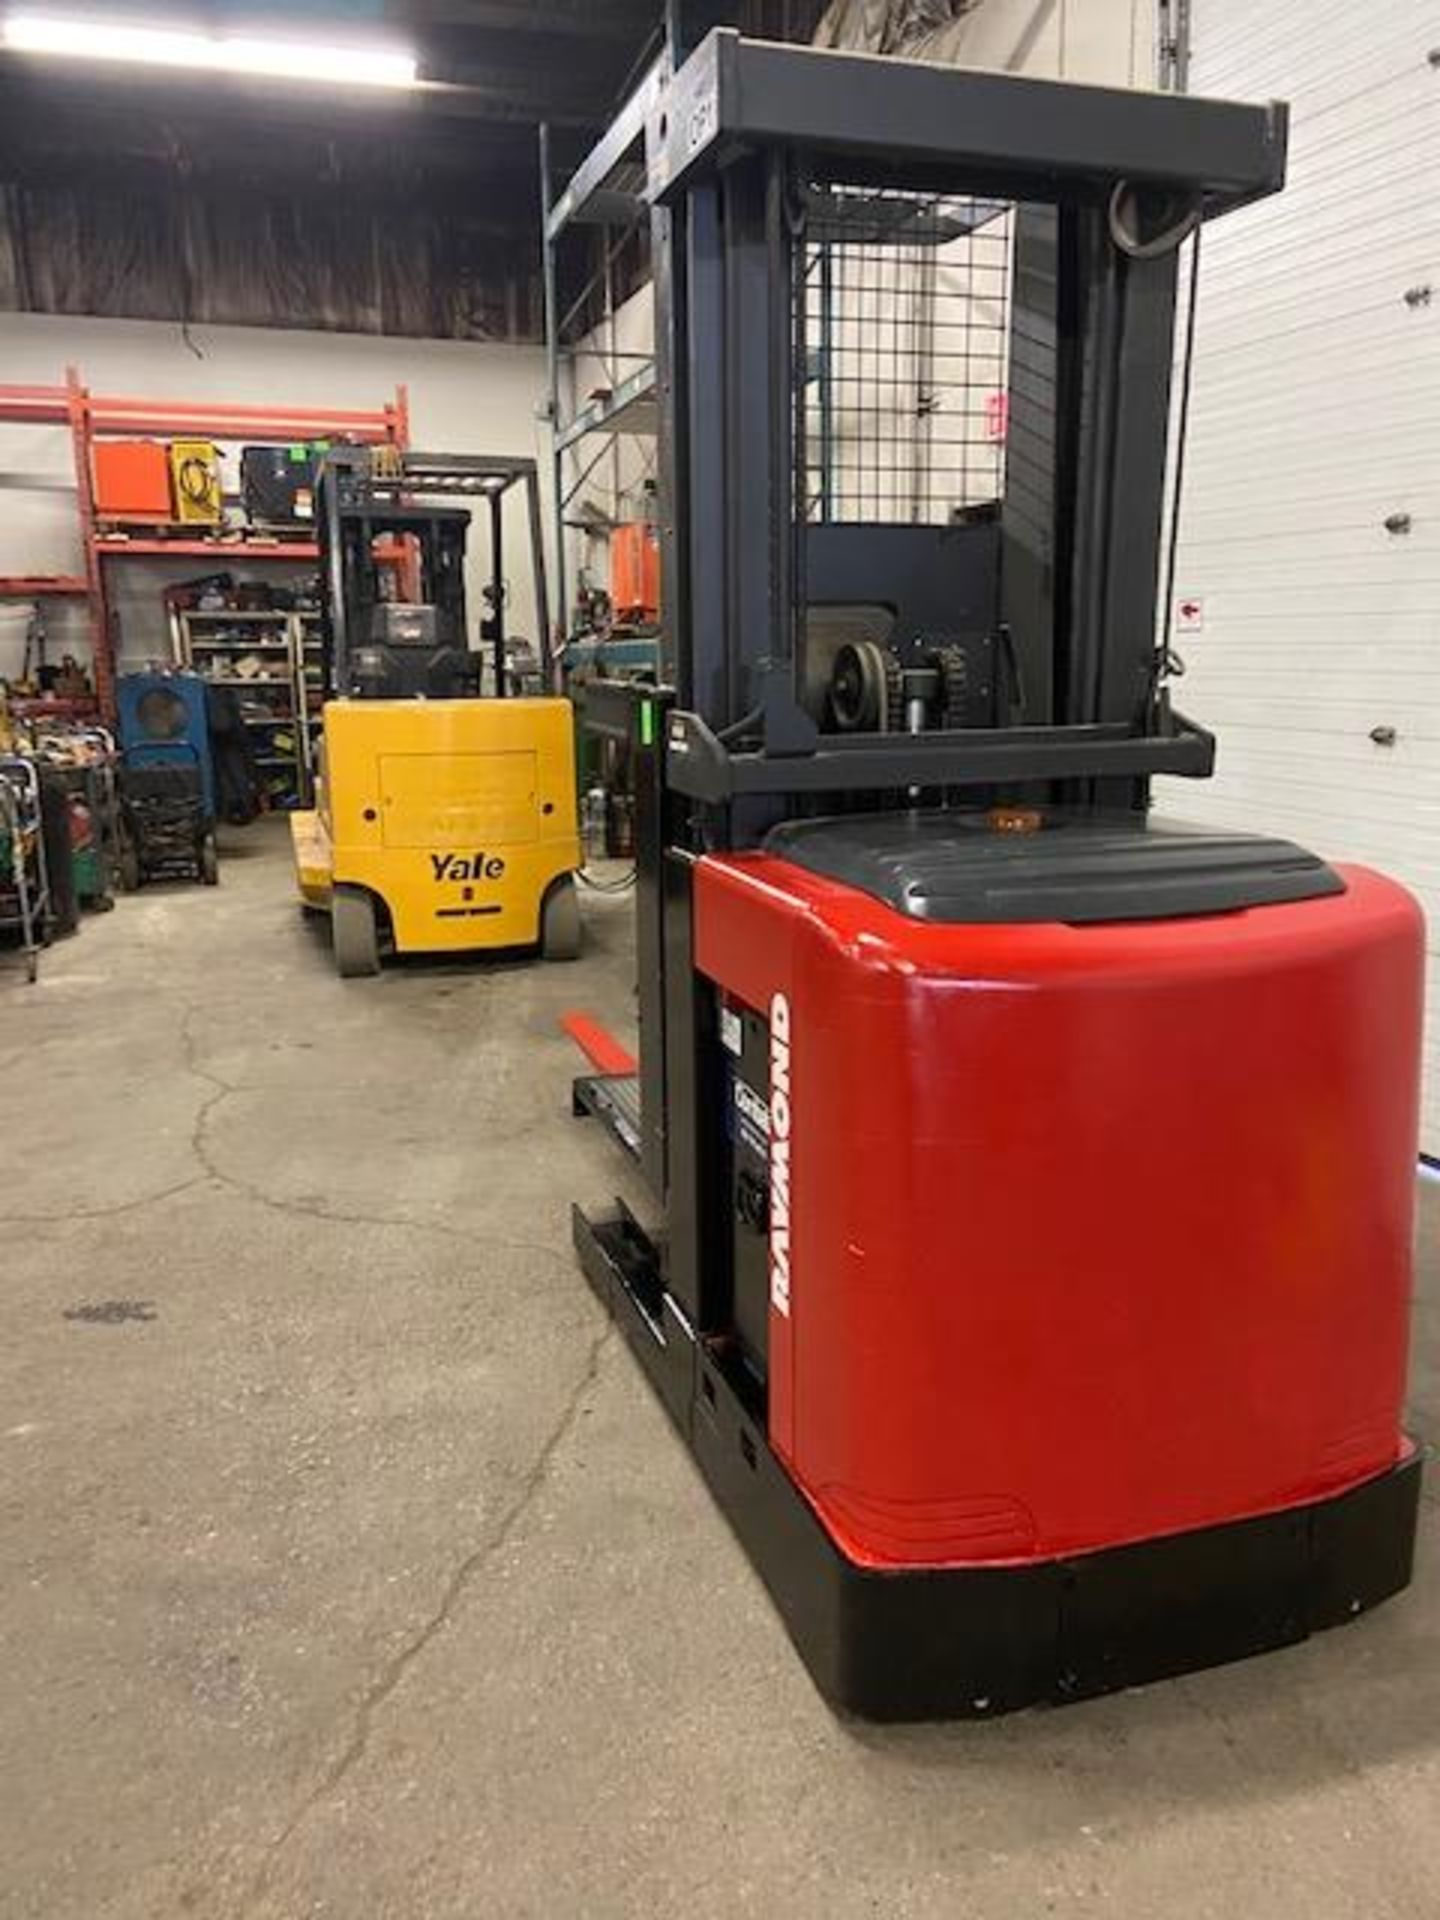 FREE CUSTOMS - 2008 Raymond Order Picker Electric Powered Pallet Cart Lifter with low hours - Image 3 of 3